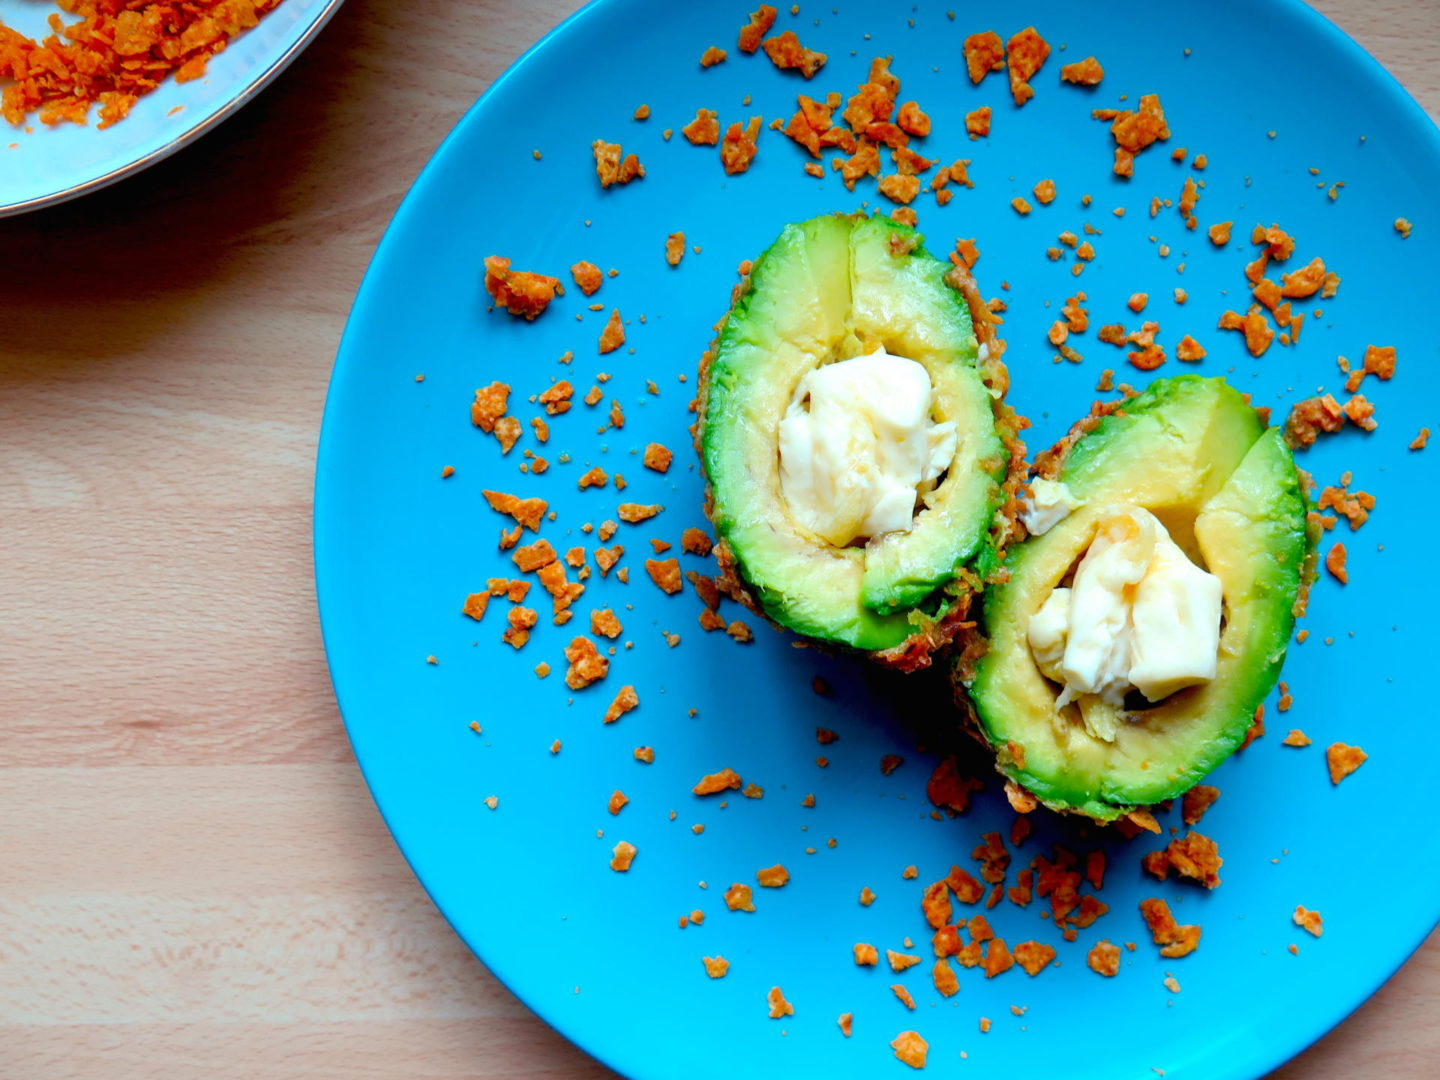 'DIET' AVOCADOS? NAH MATE, WE'LL DEEP FRY OURS